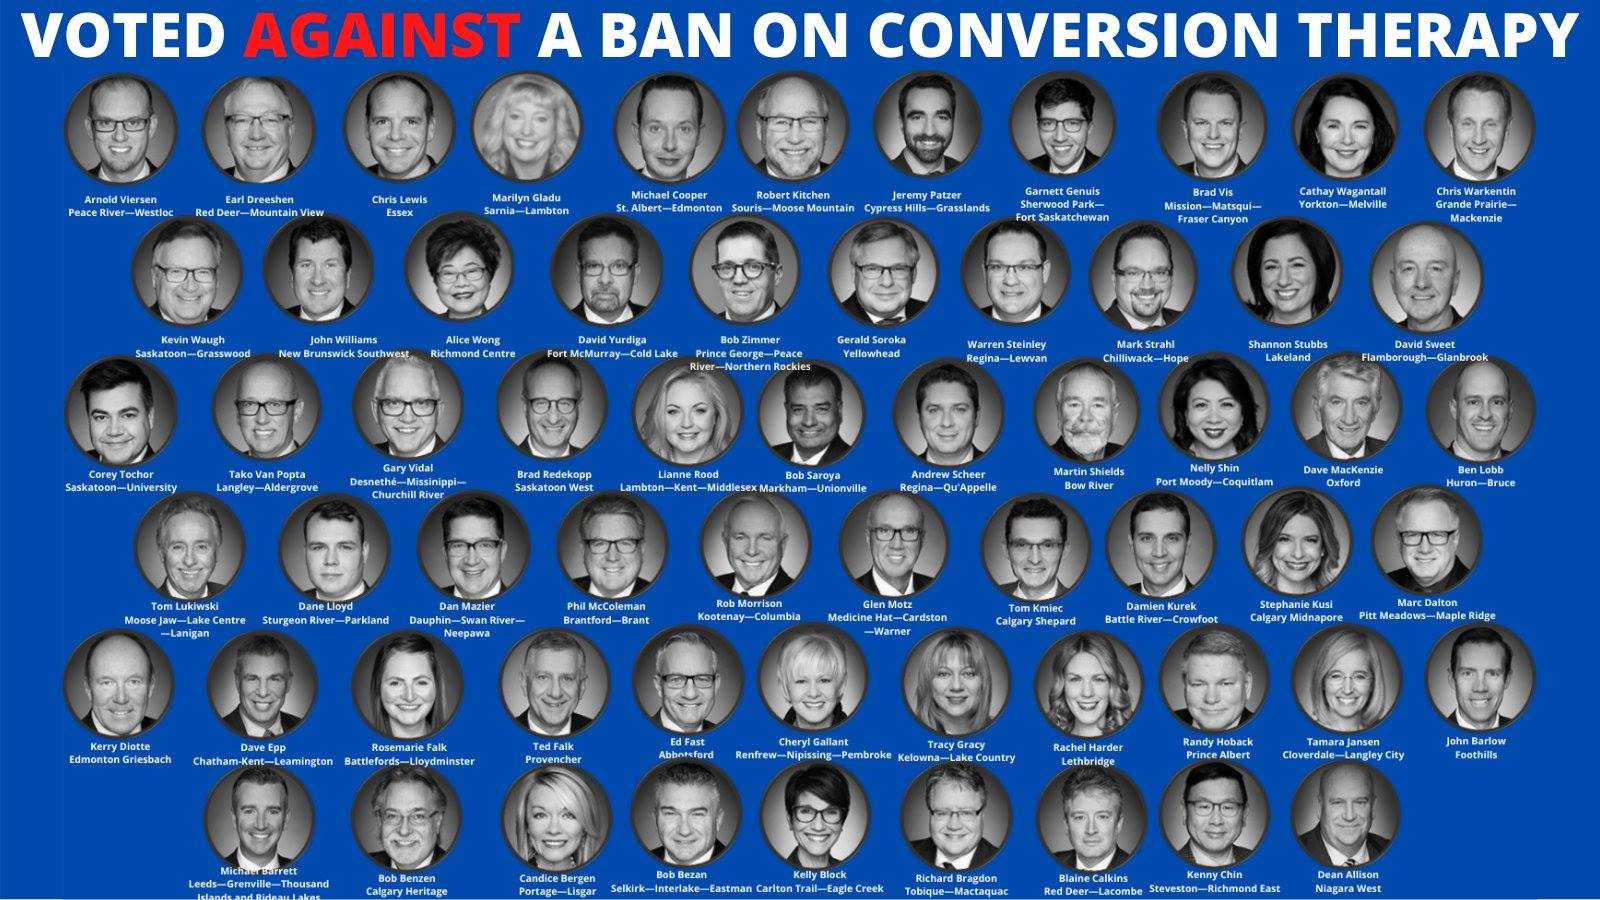 Cons vote against Conversion Therapy